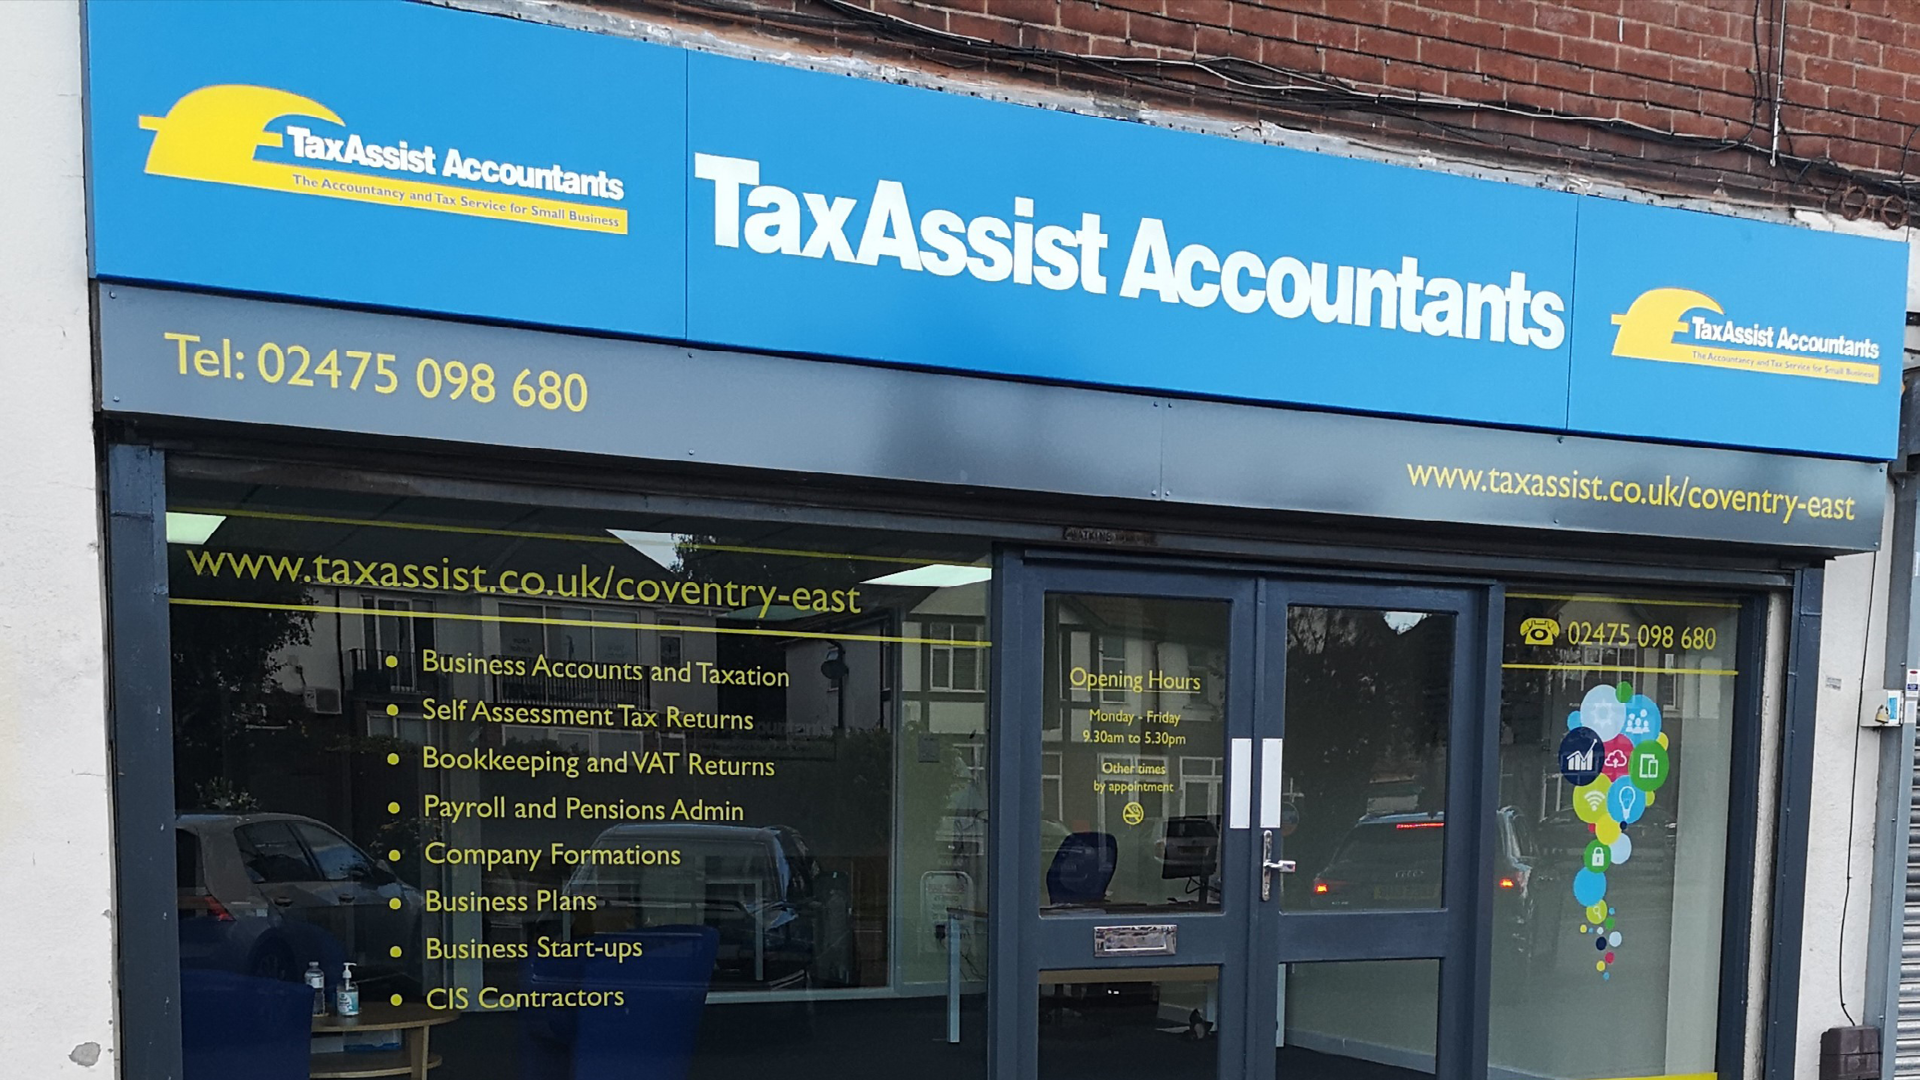 New TaxAssist Accountants shop launches in Coventry